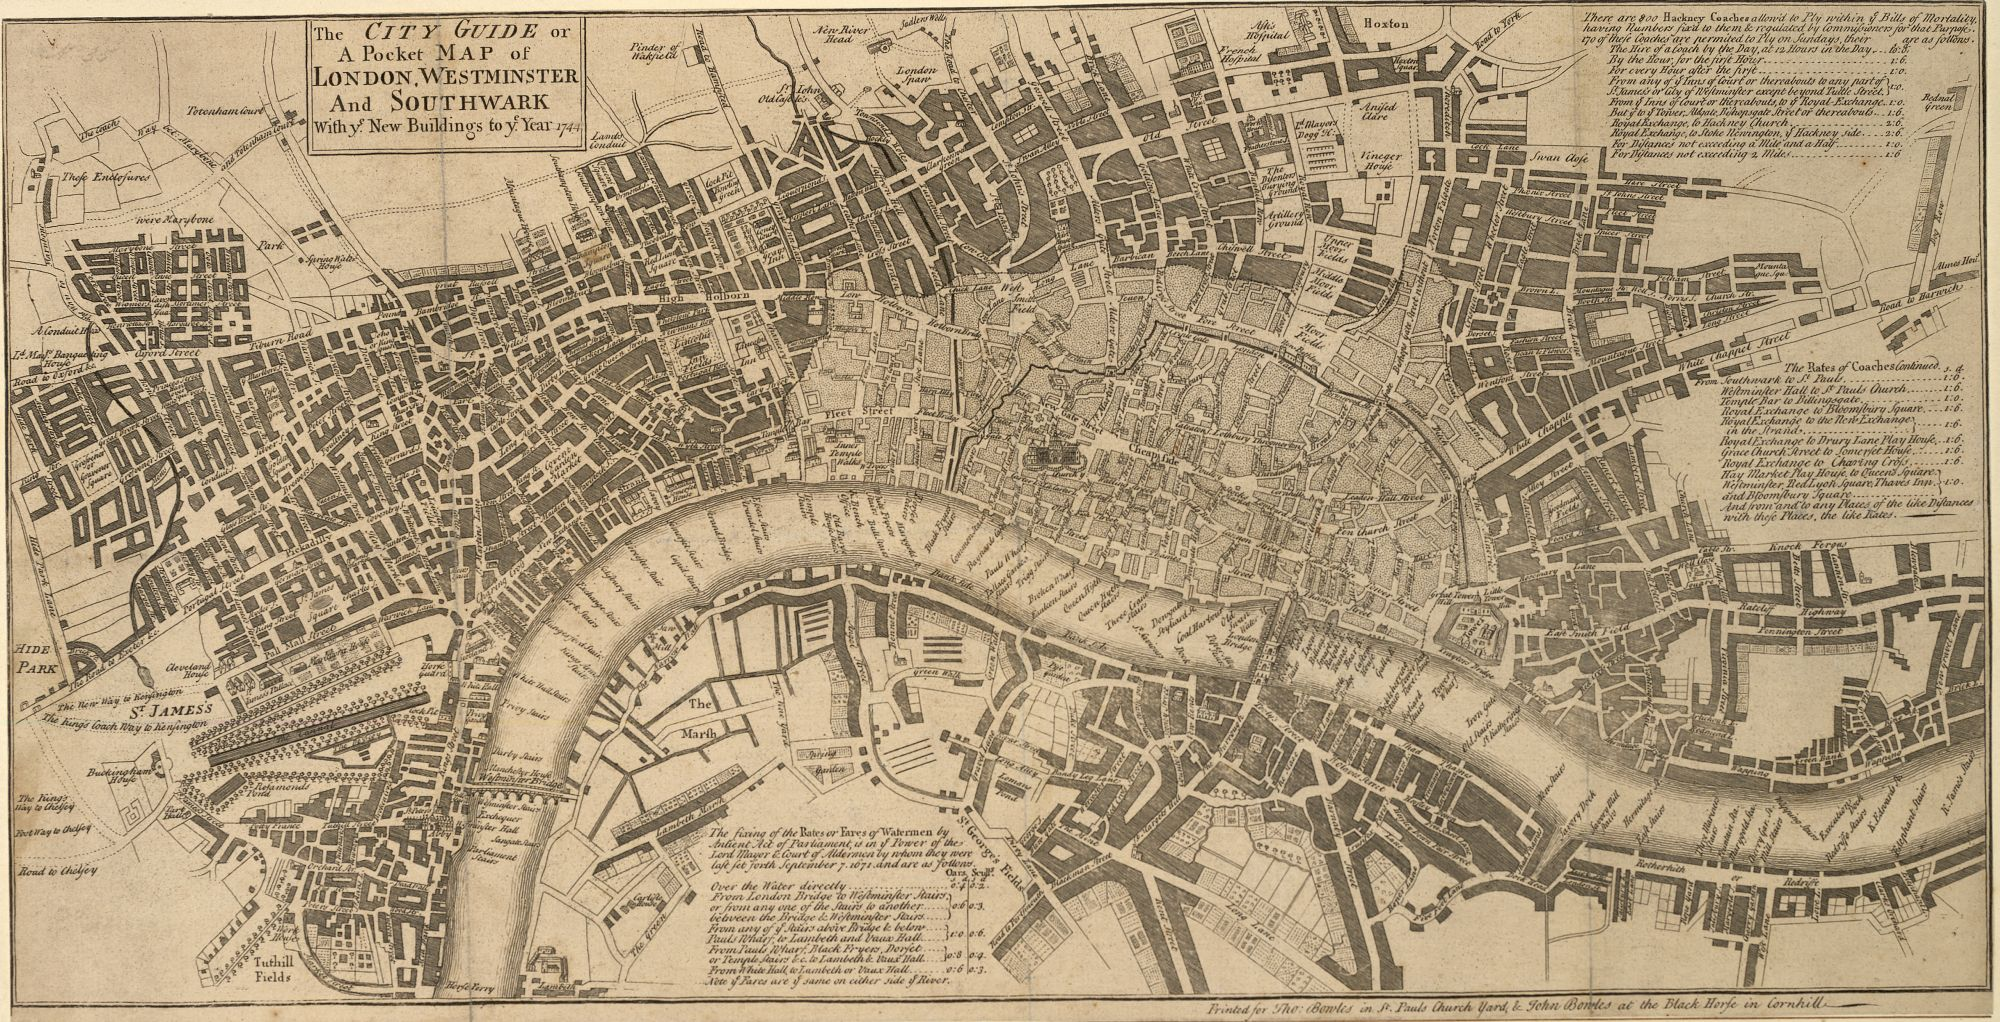 Map Of City Of London Uk.Maps Guidebooks And Topographical Prints Of London By The Bowles